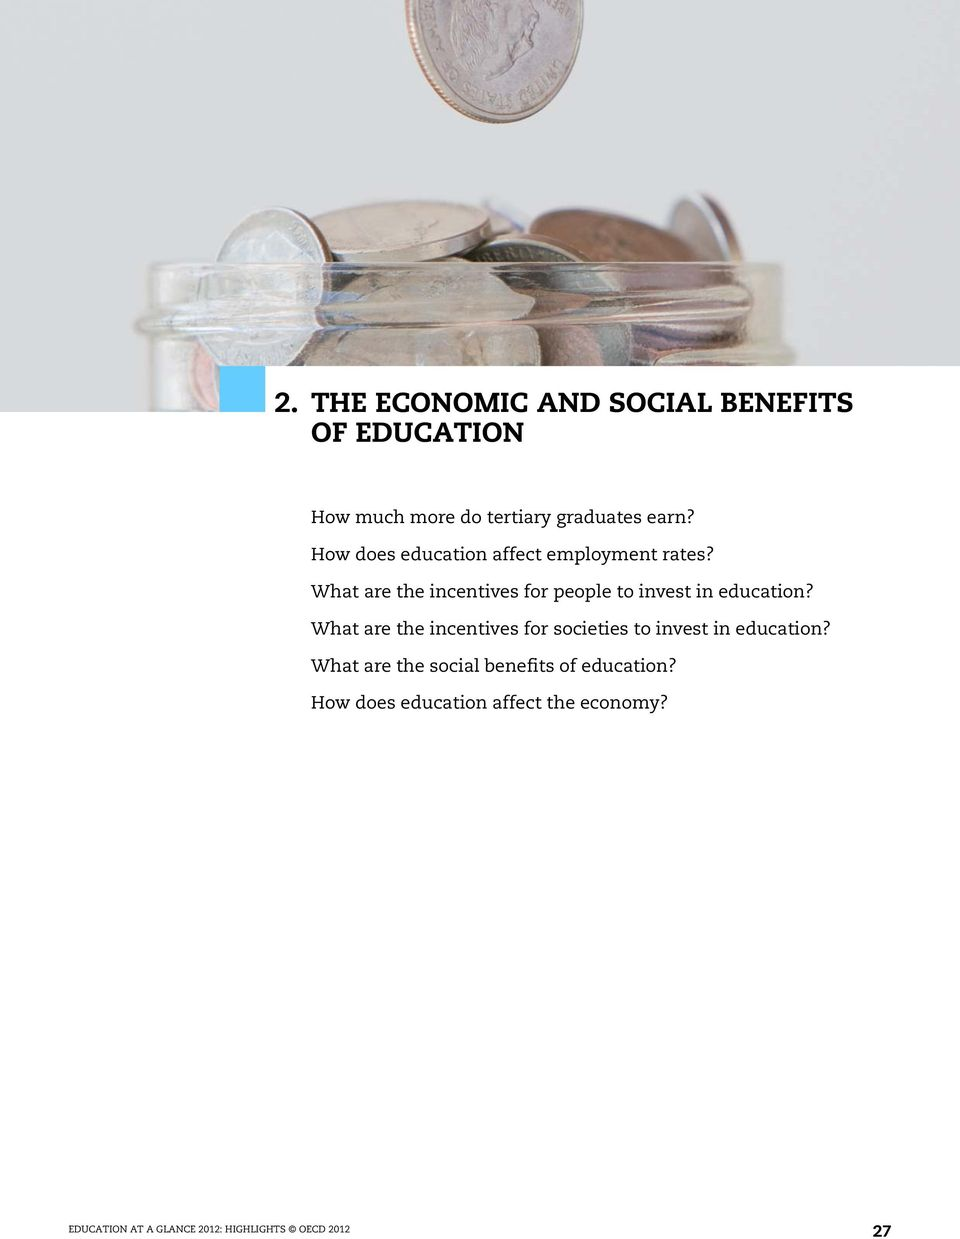 What are the incentives for people to invest in education?